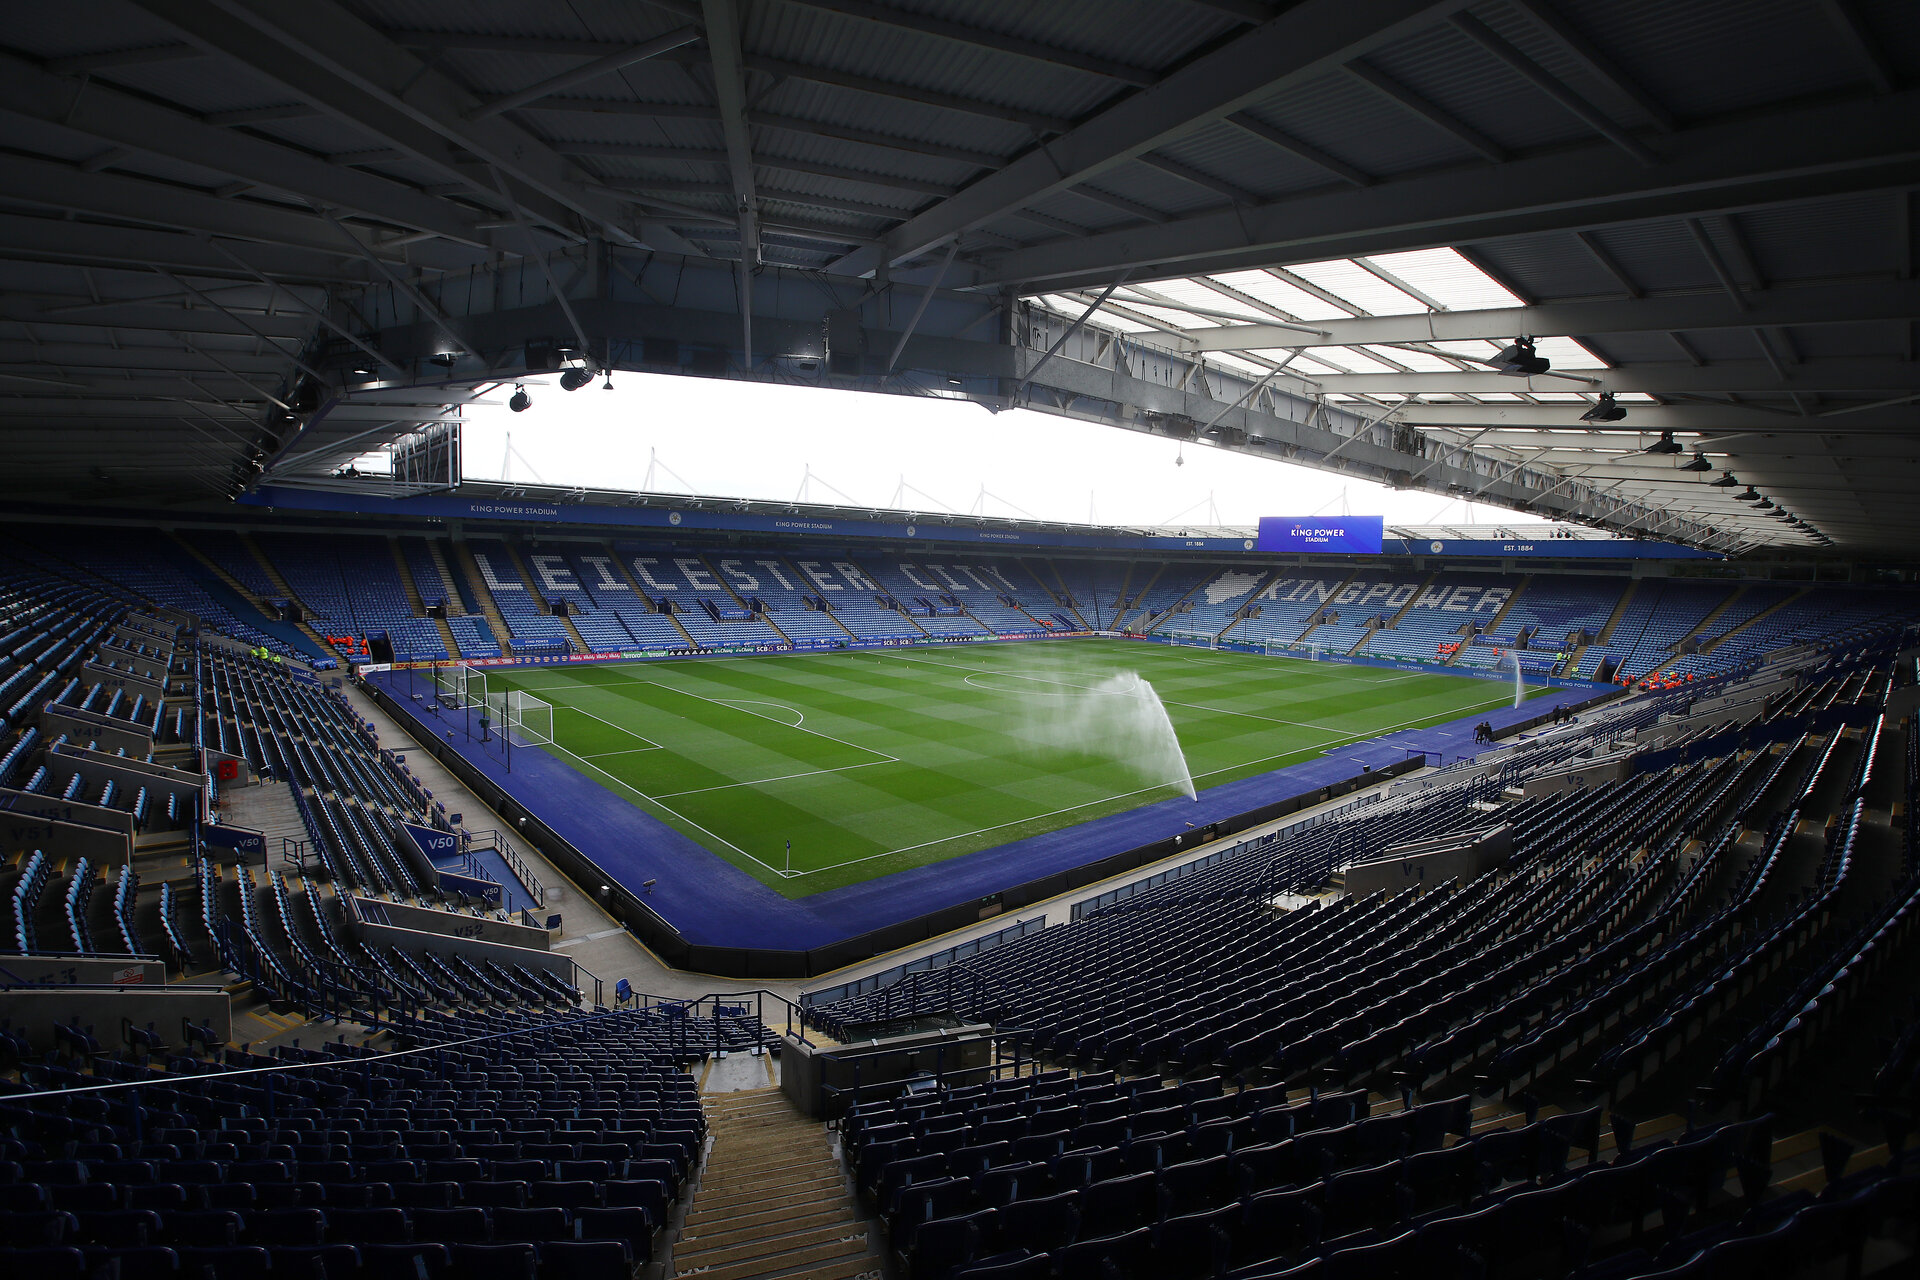 LEICESTER, ENGLAND - JANUARY 11: A general view ahead of the Premier League match between Leicester City and Southampton FC at The King Power Stadium on January 11, 2020 in Leicester, United Kingdom. (Photo by Matt Watson/Southampton FC via Getty Images)